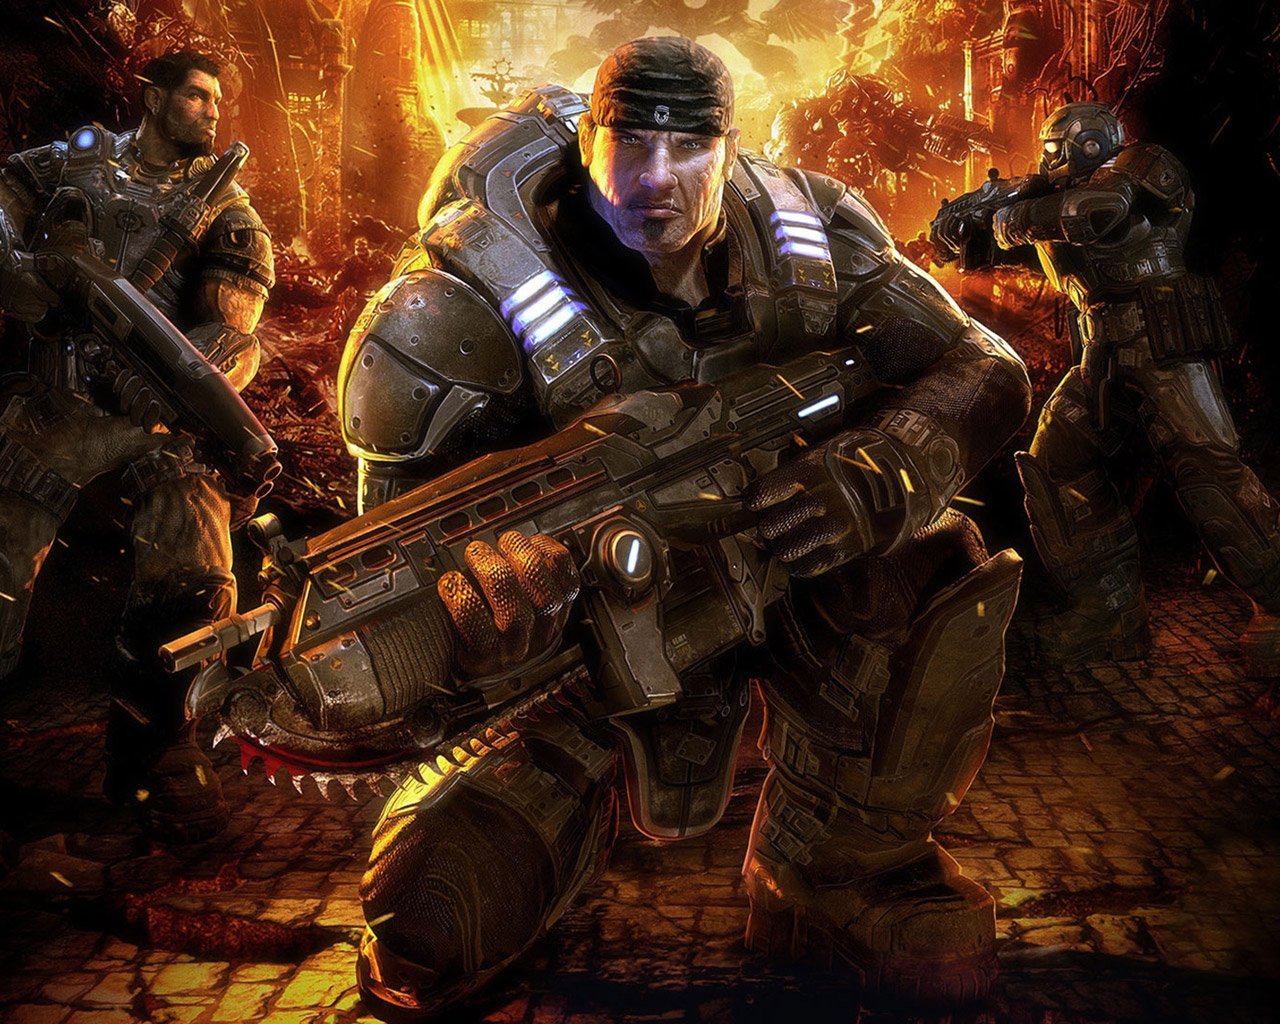 Gears of War Wallpaper in 1280x1024